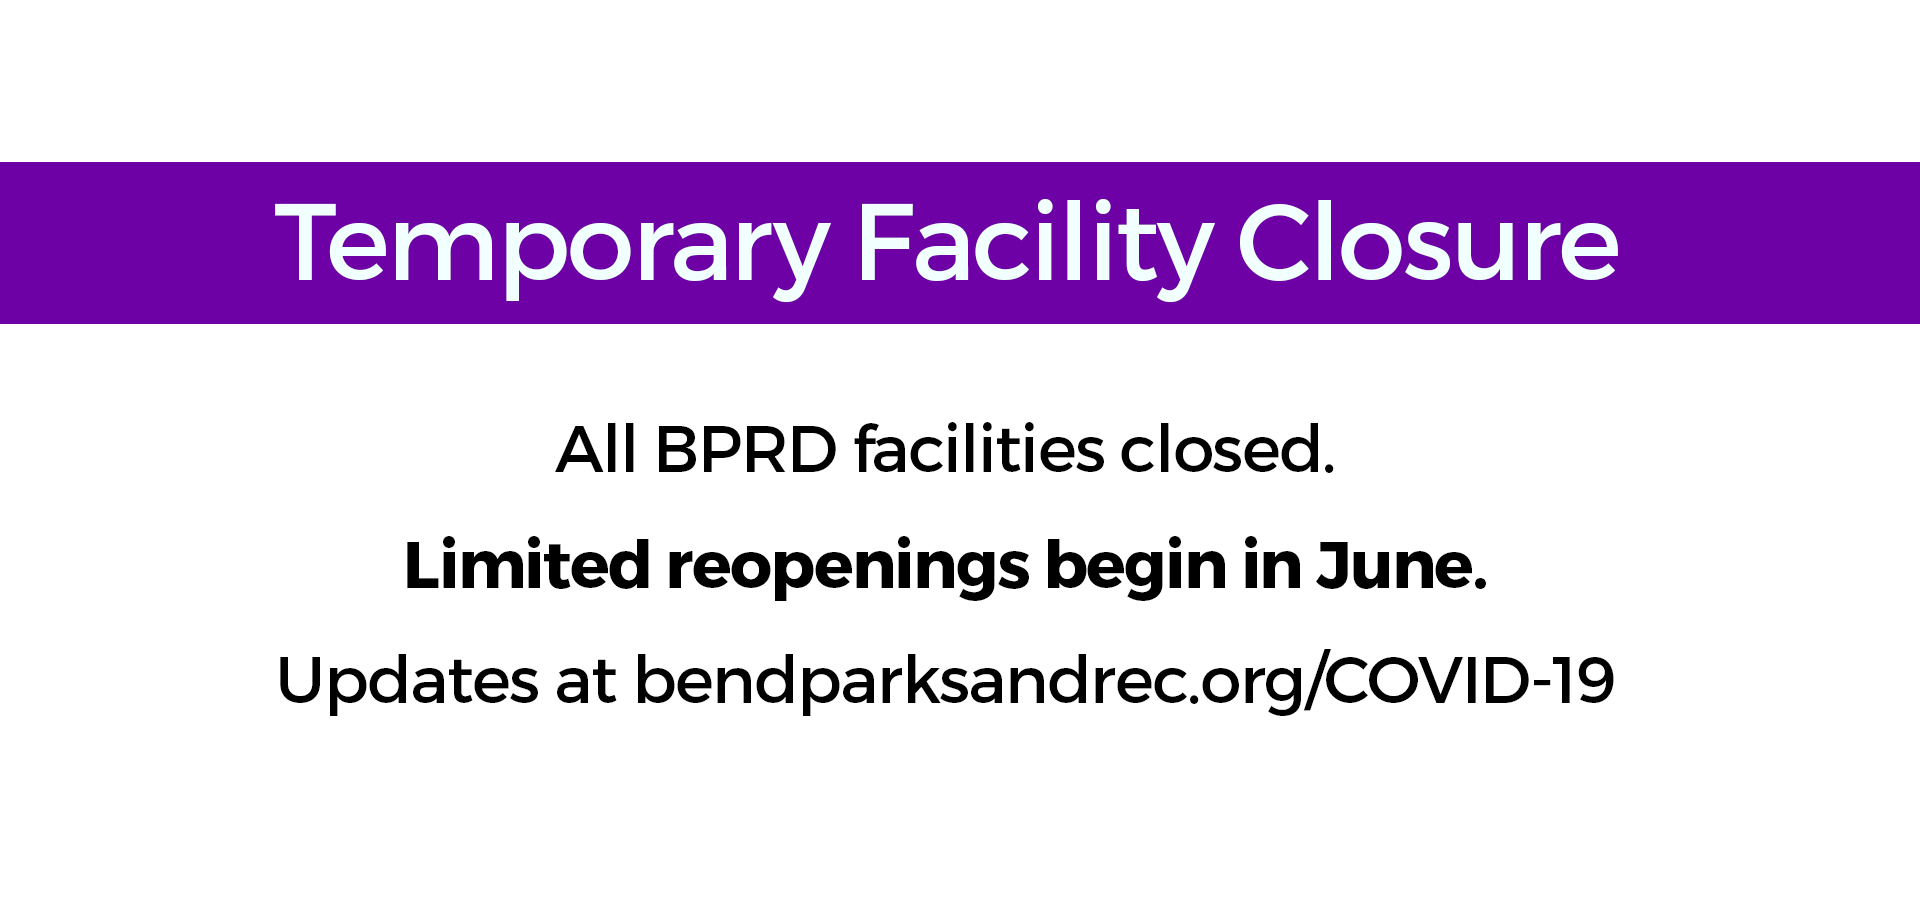 Facility closed; reopening in June